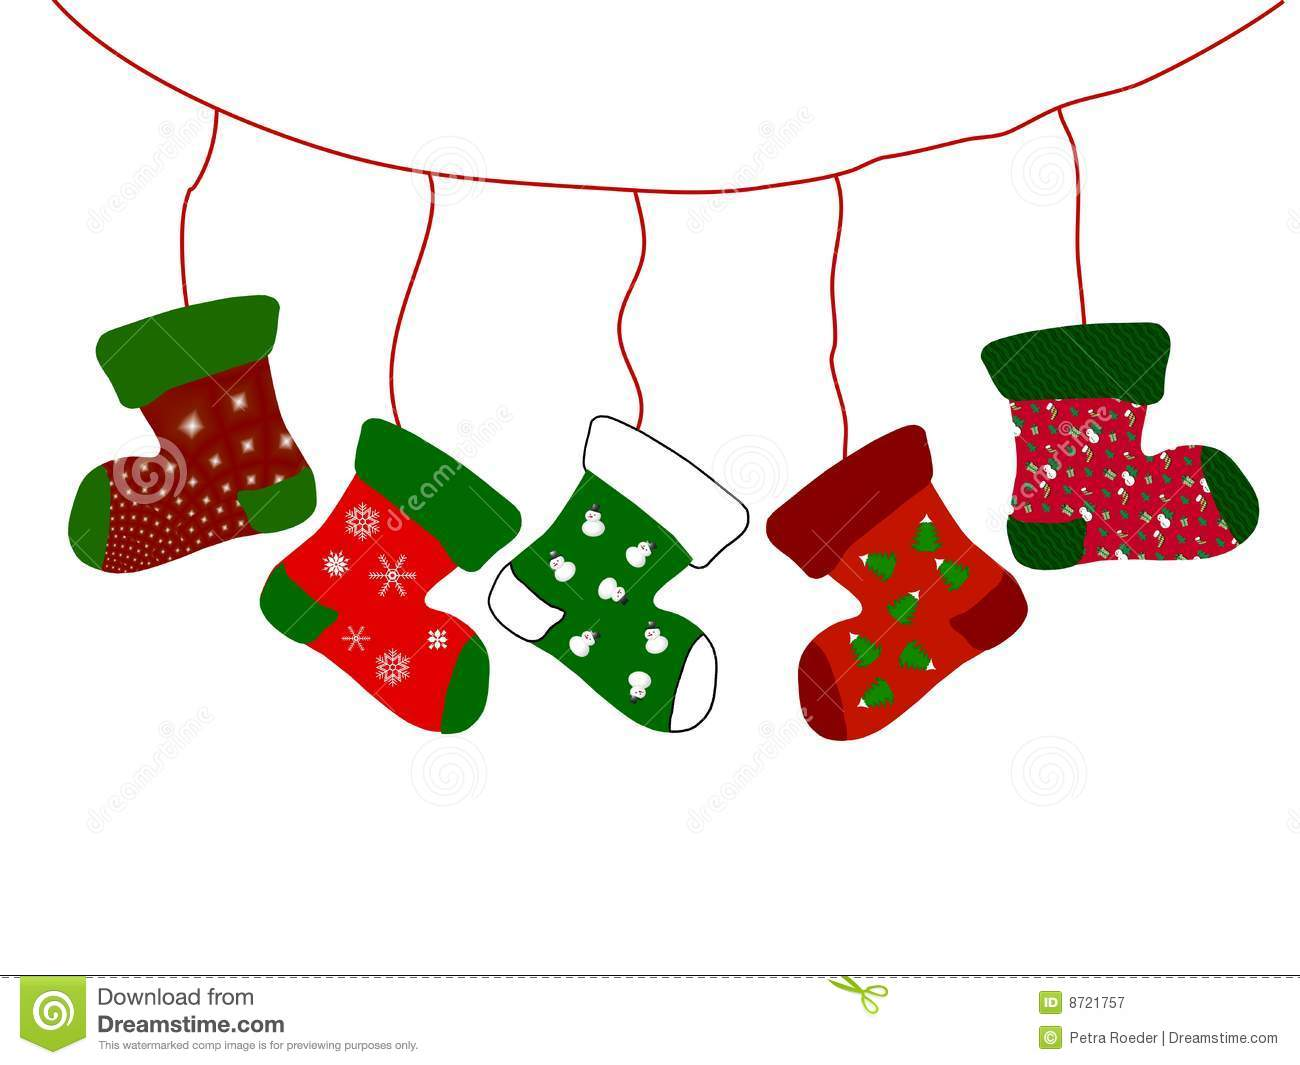 ... decorative Christmas stockings hanging from line, white background